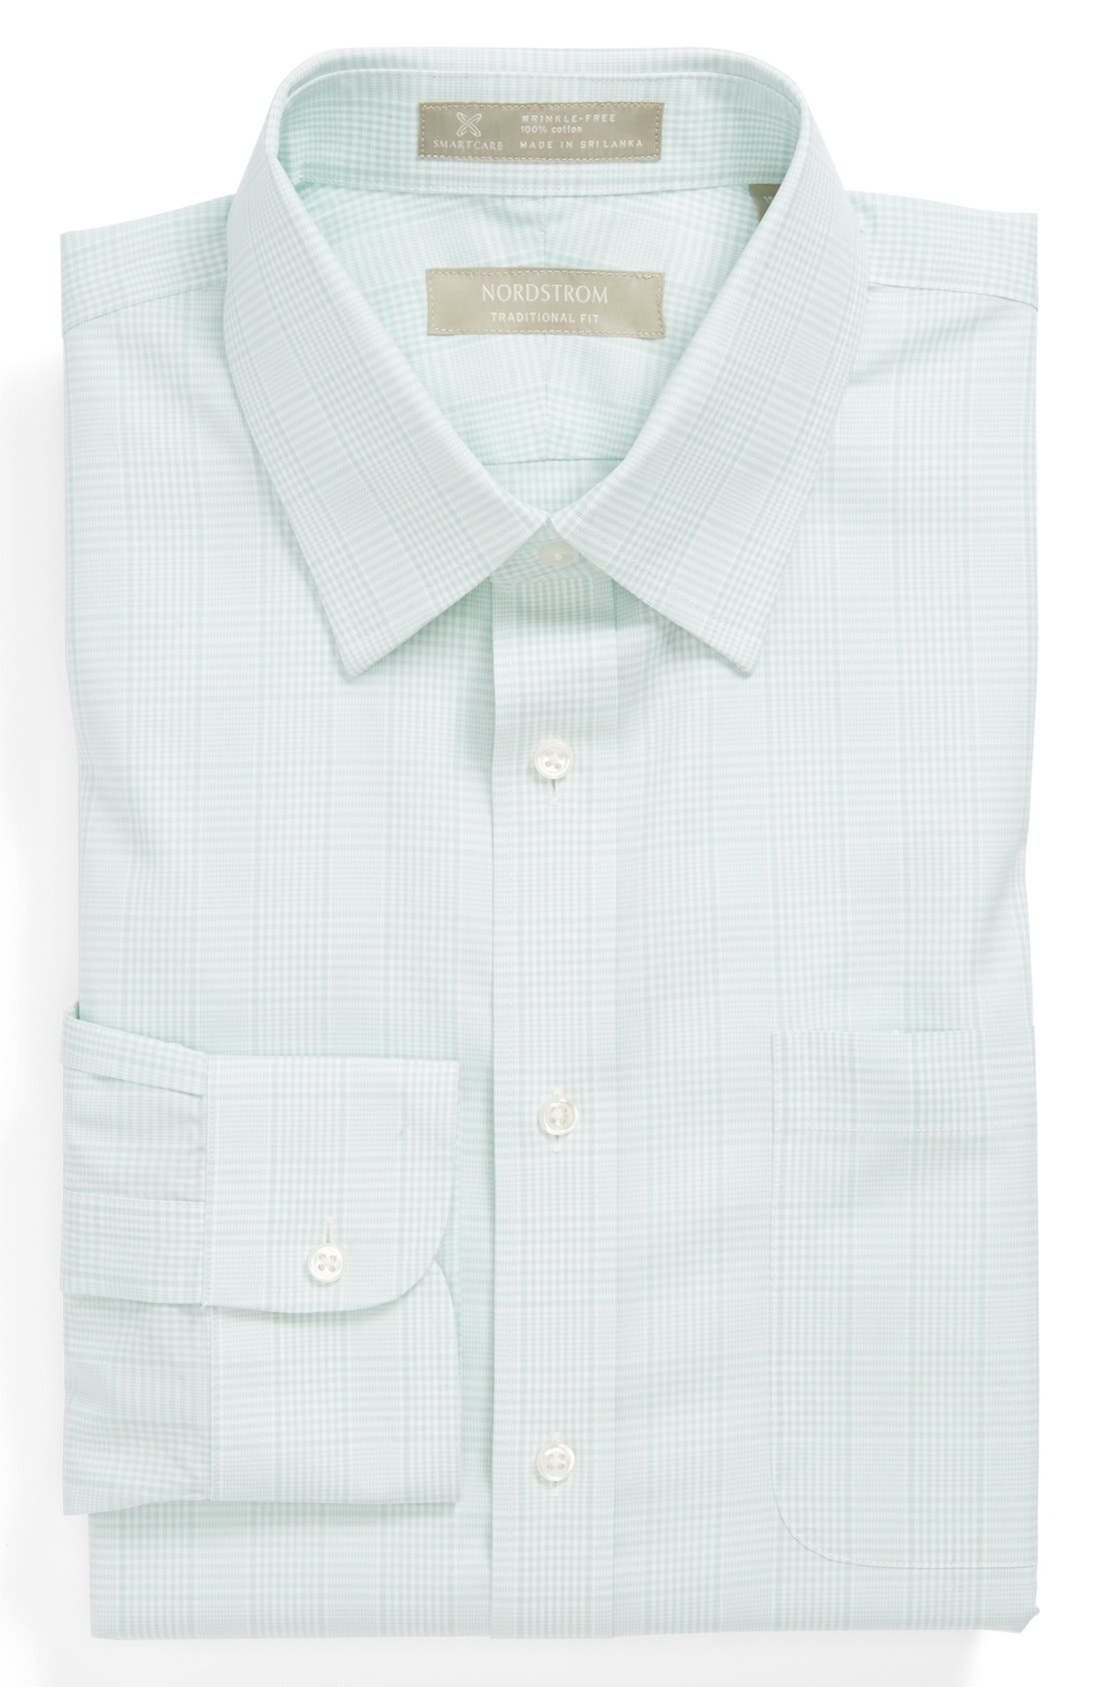 Main Image - Nordstrom Smartcare™ Wrinkle Free Traditional Fit Dress Shirt